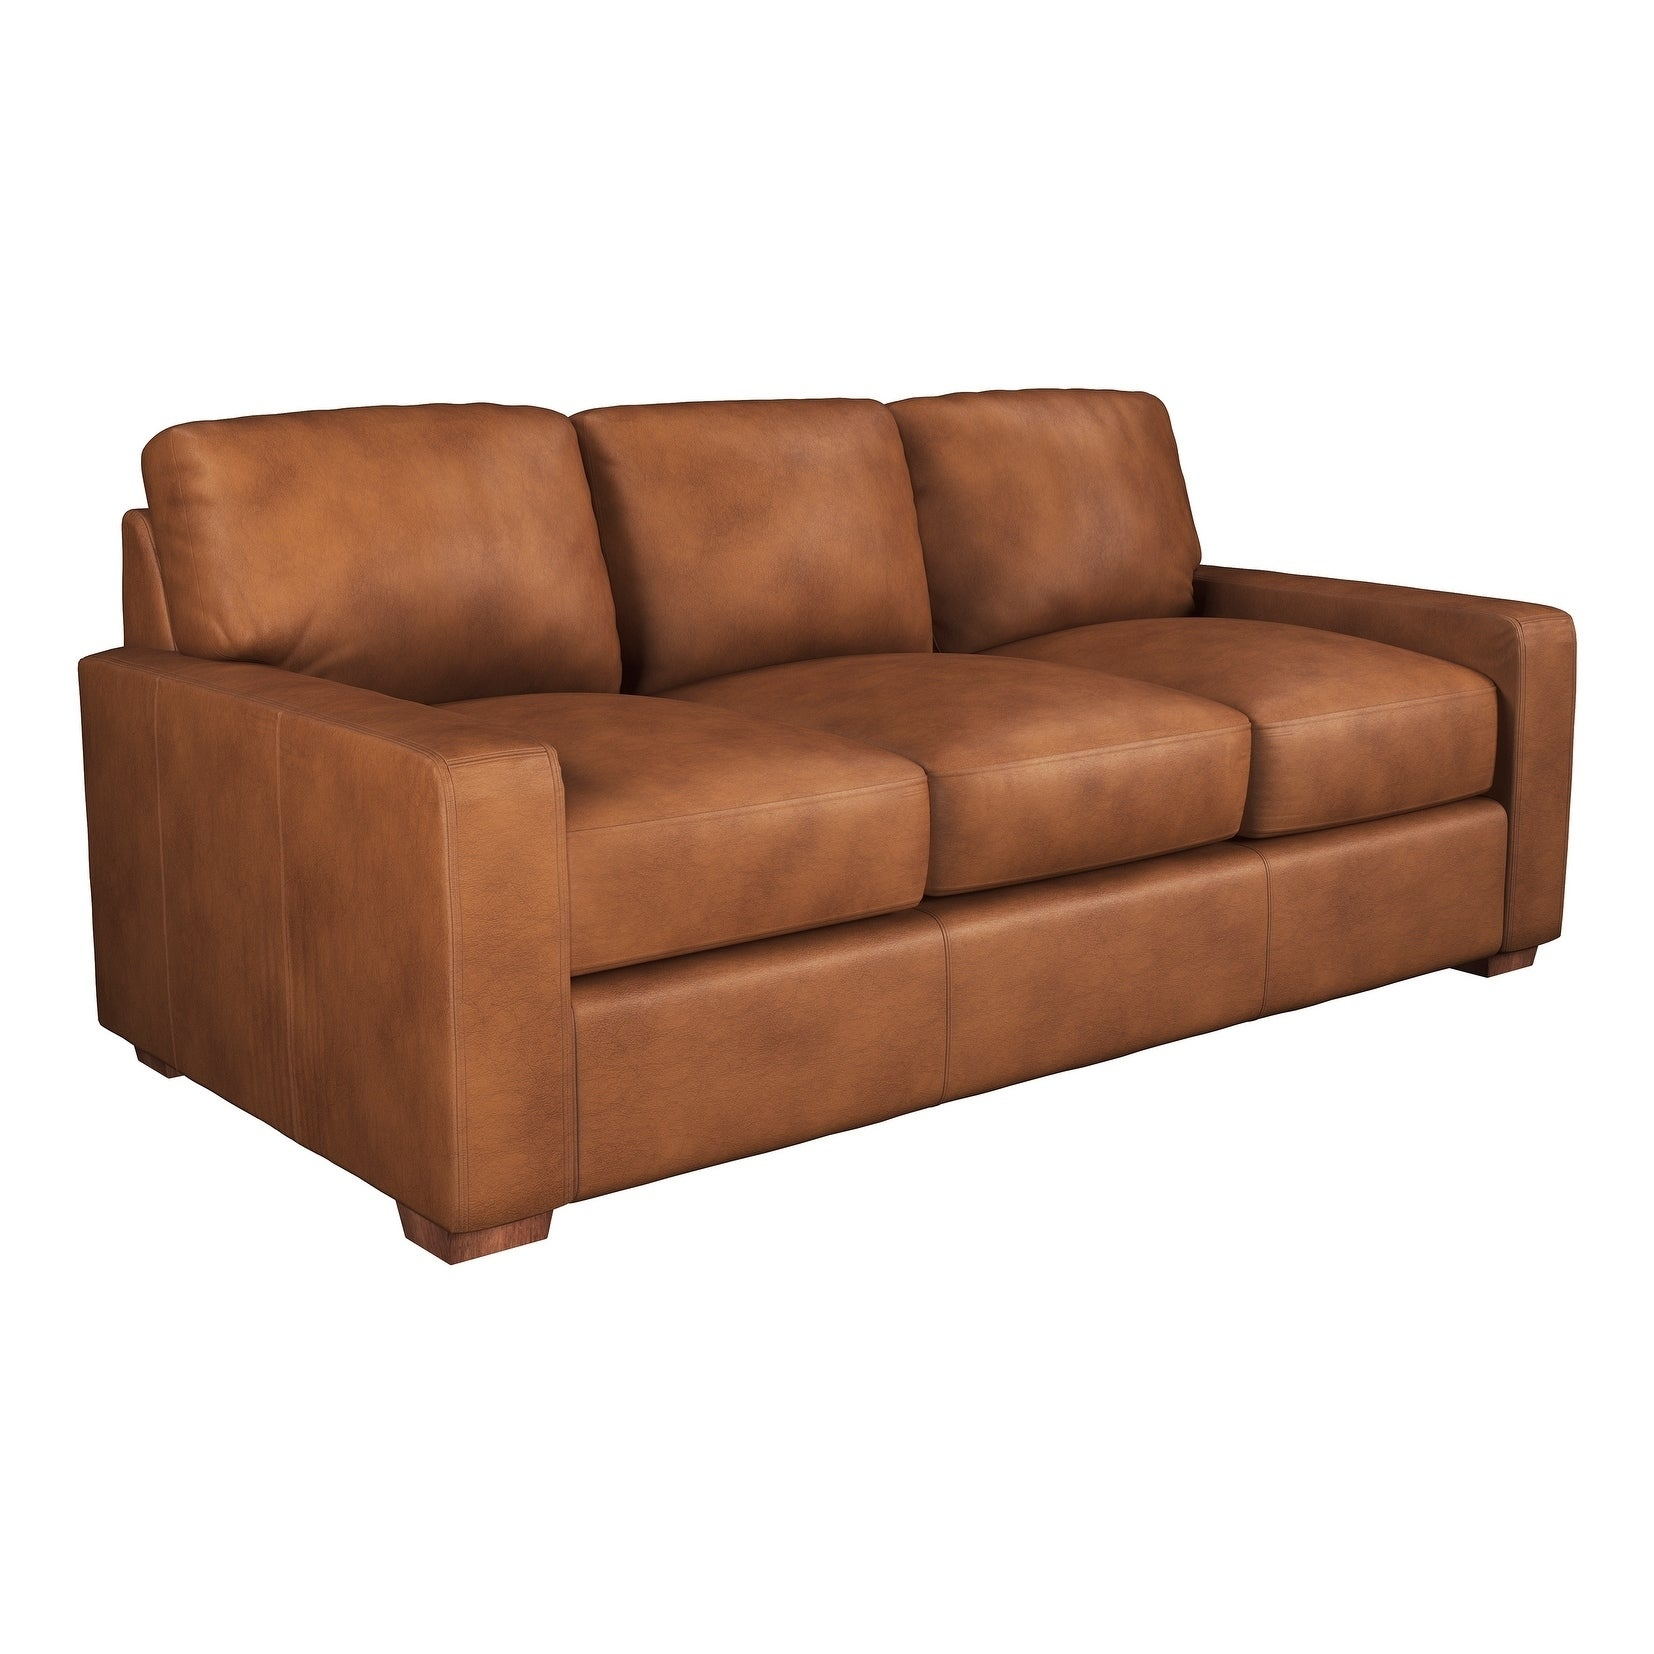 - Shop Made To Order Maxim 100% Top Grain Leather Sofa - On Sale